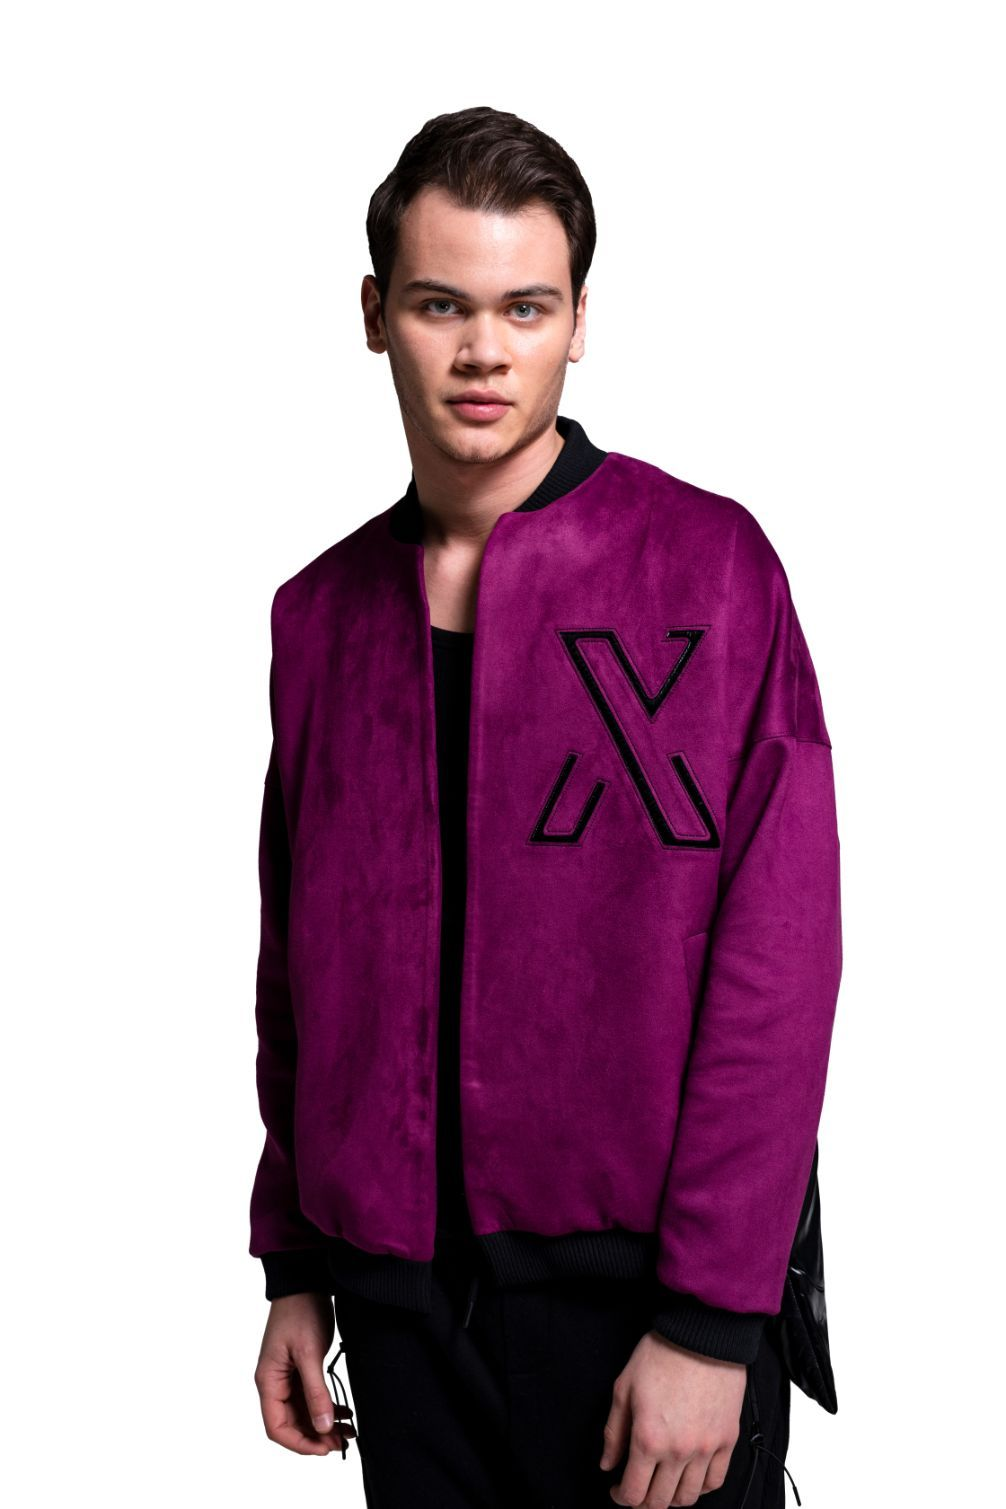 Lunar Purple College Jacket - The Clothing LoungeXUMU